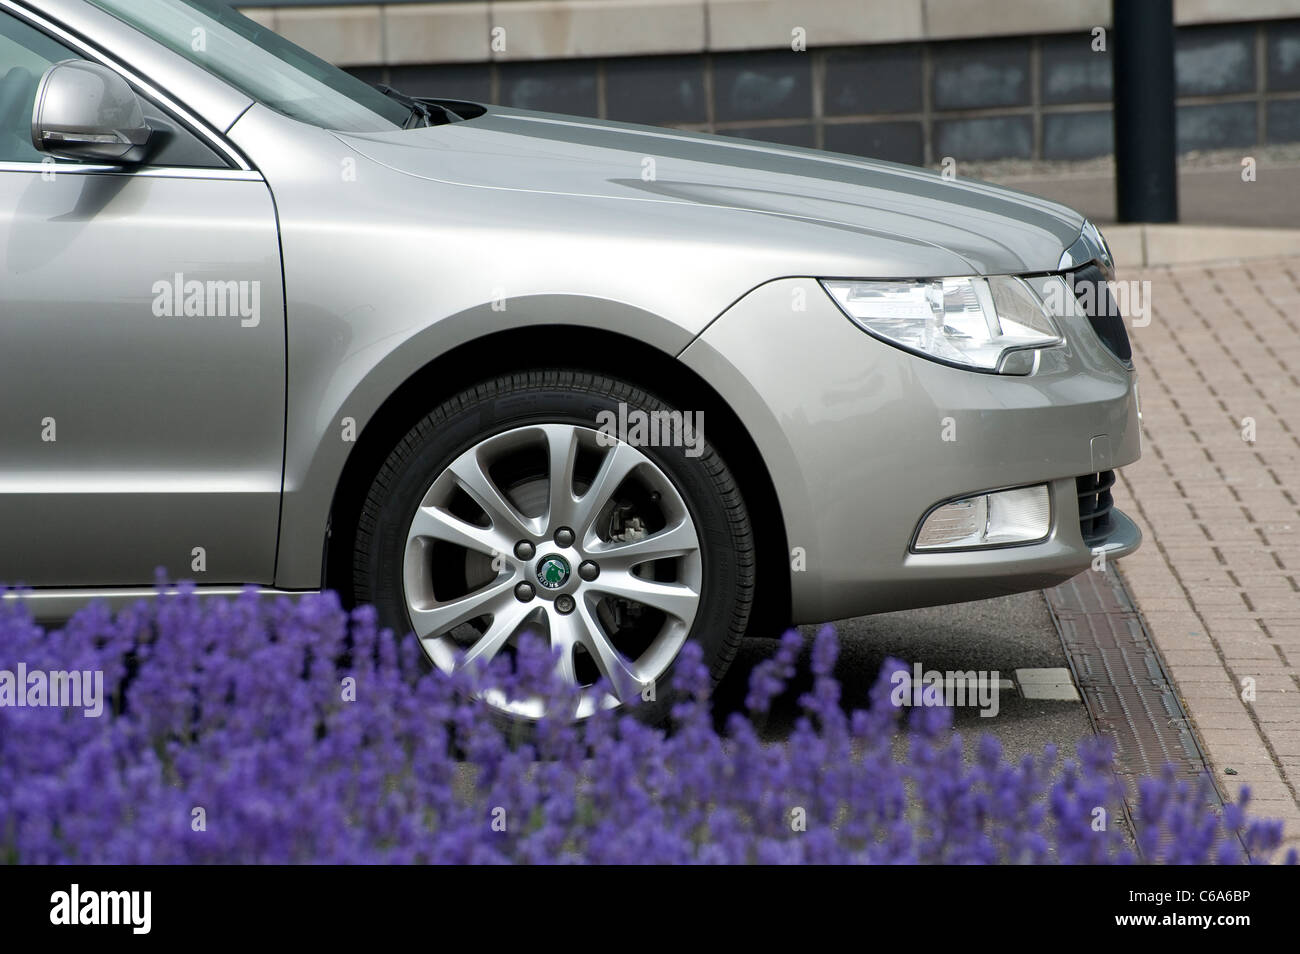 Skoda Car Front Stockfotos & Skoda Car Front Bilder Alamy